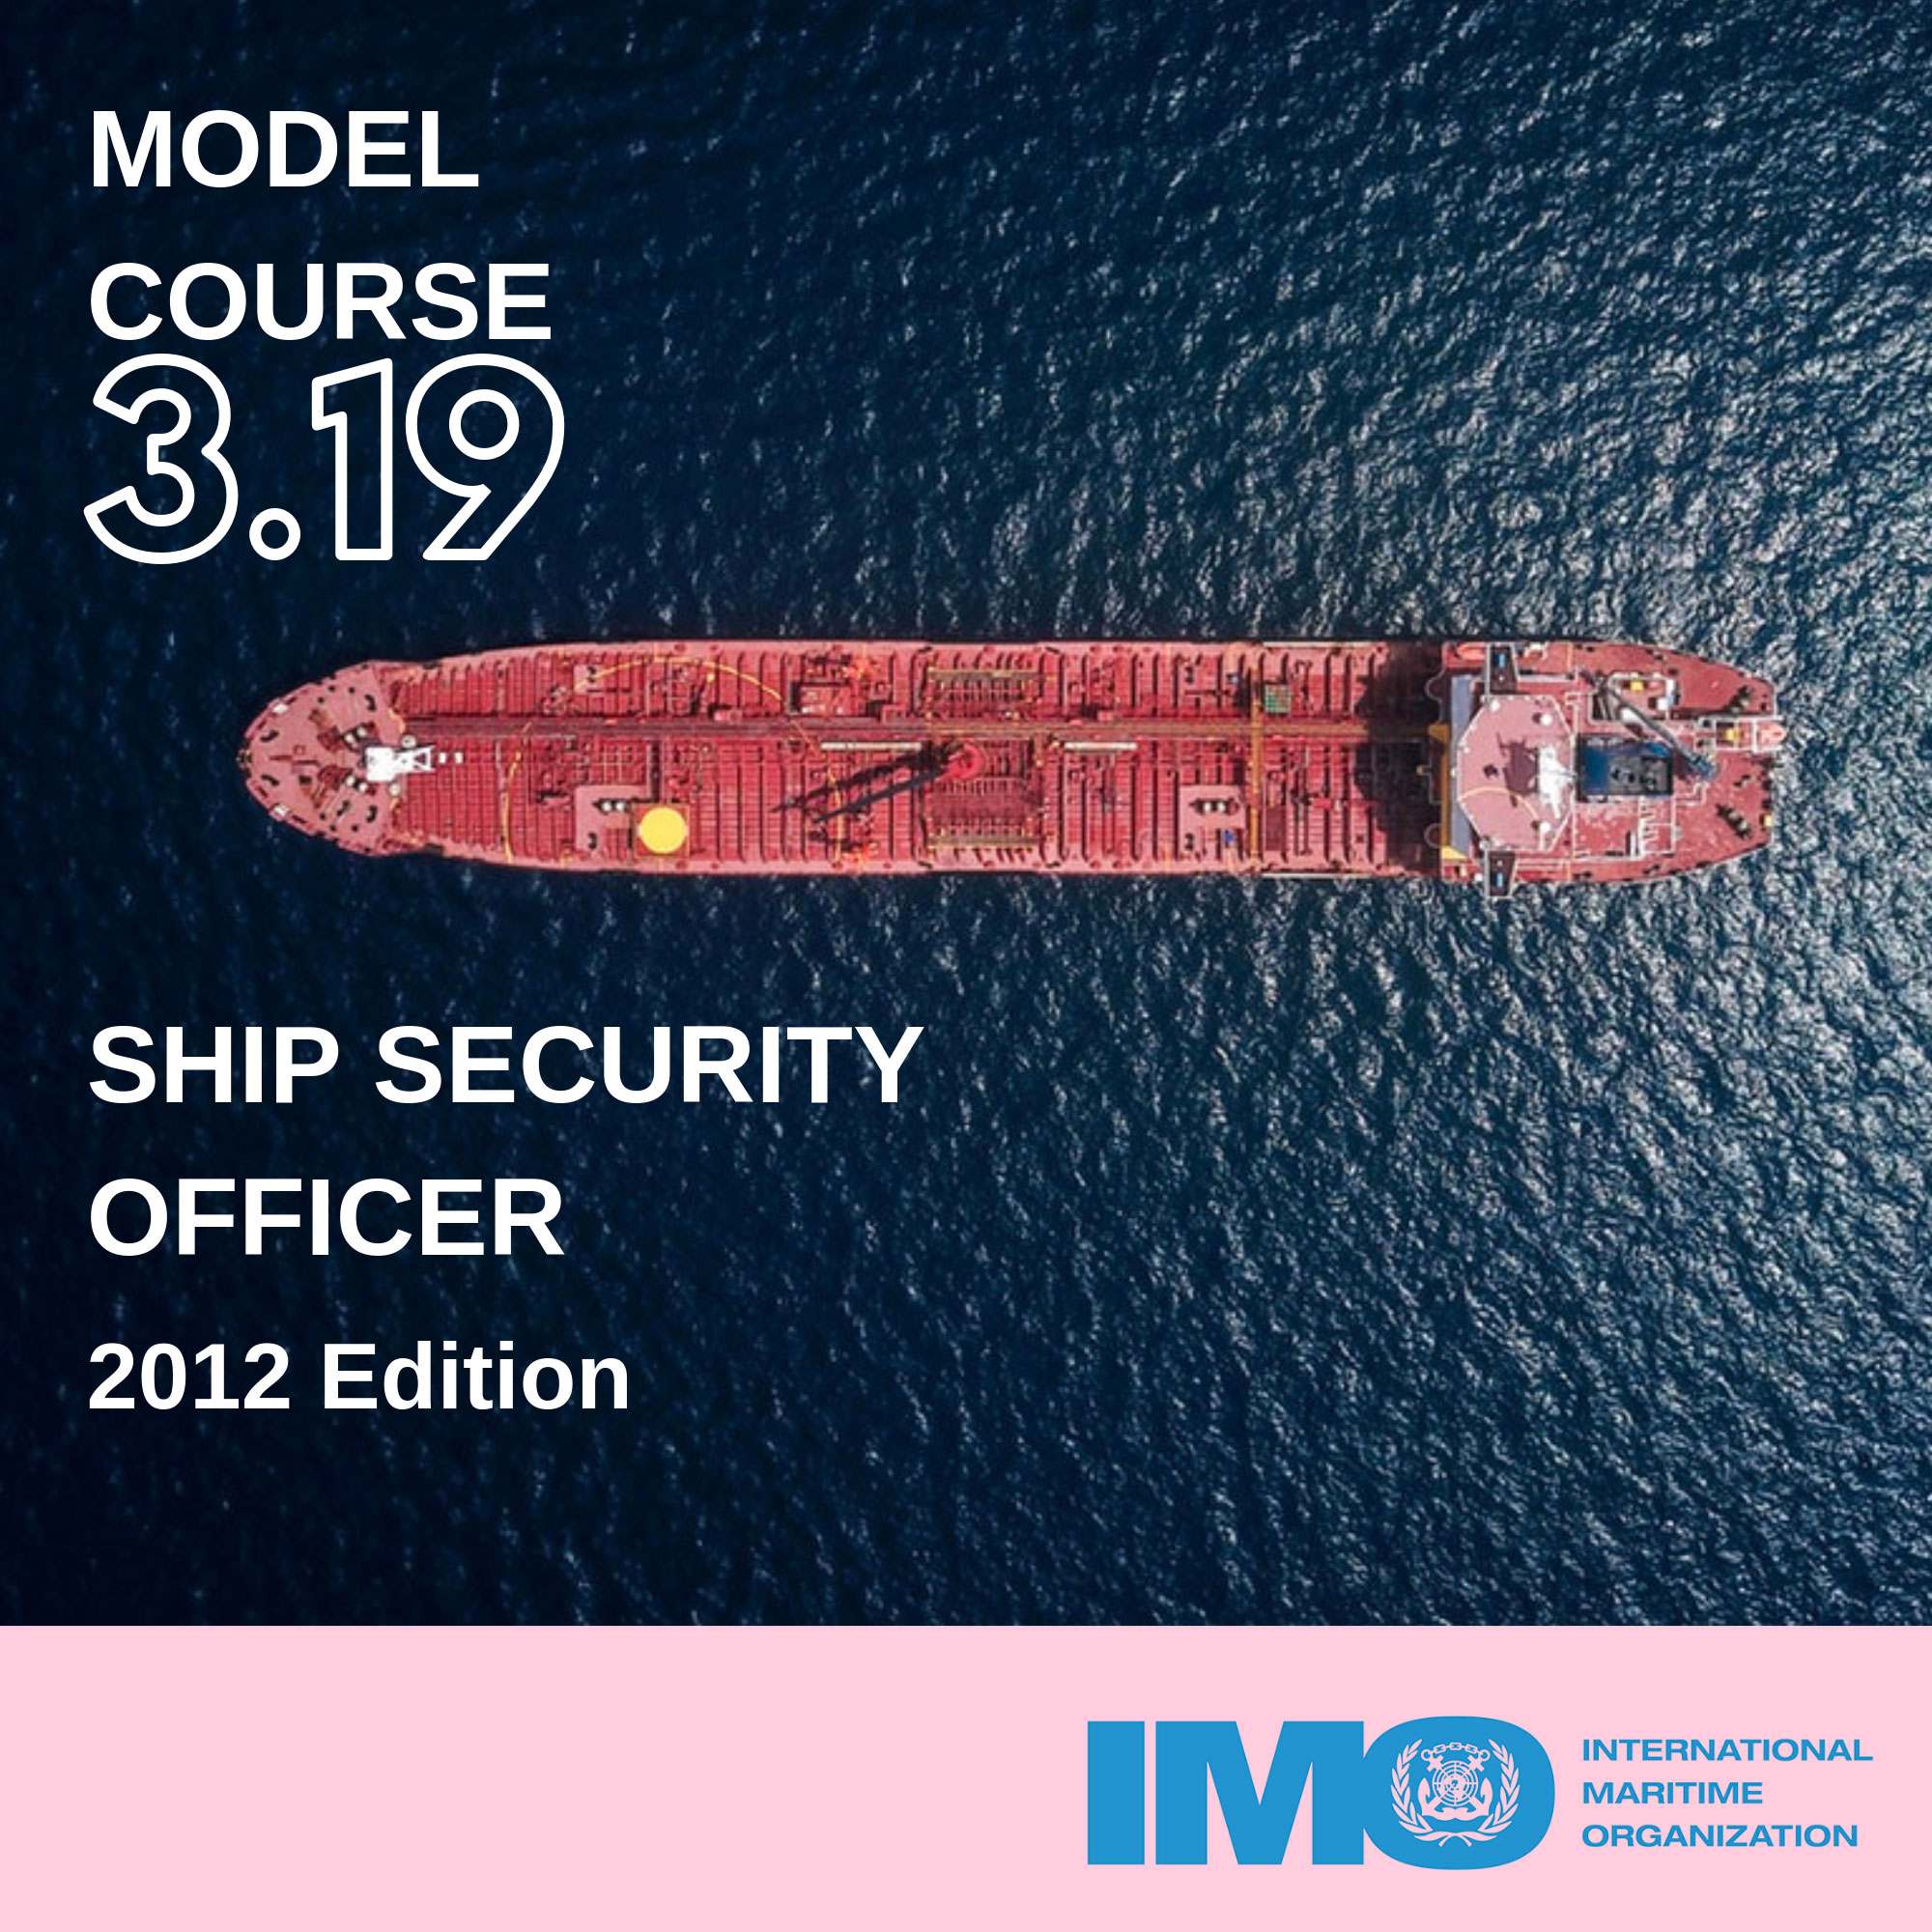 OMI 3.19 Oficial de protección del buque (Ship Security Officer)